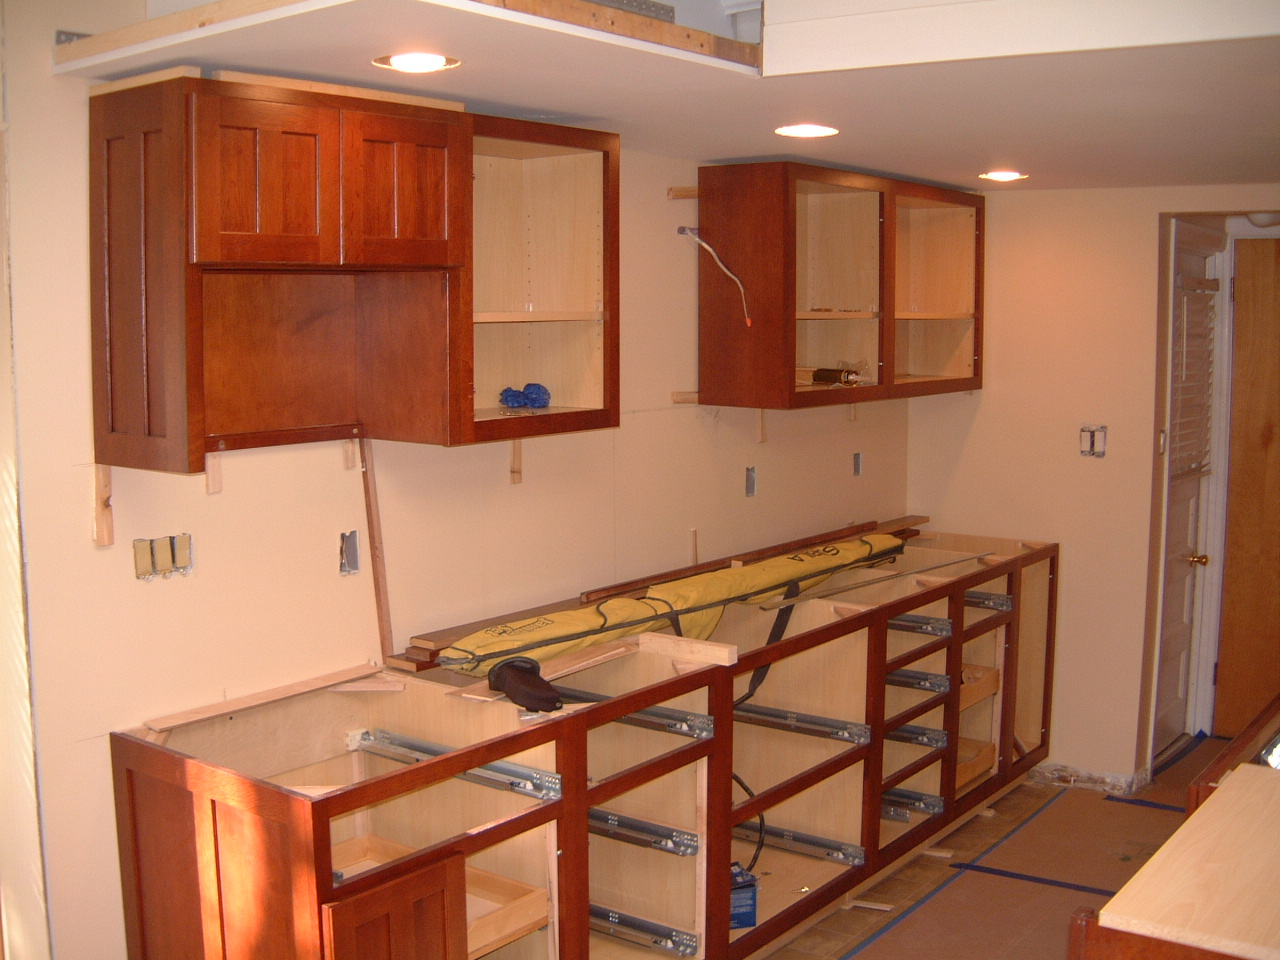 how to install a kitchen cabinet on the wall springfield kitchen cabinet install remodeling designs 17023